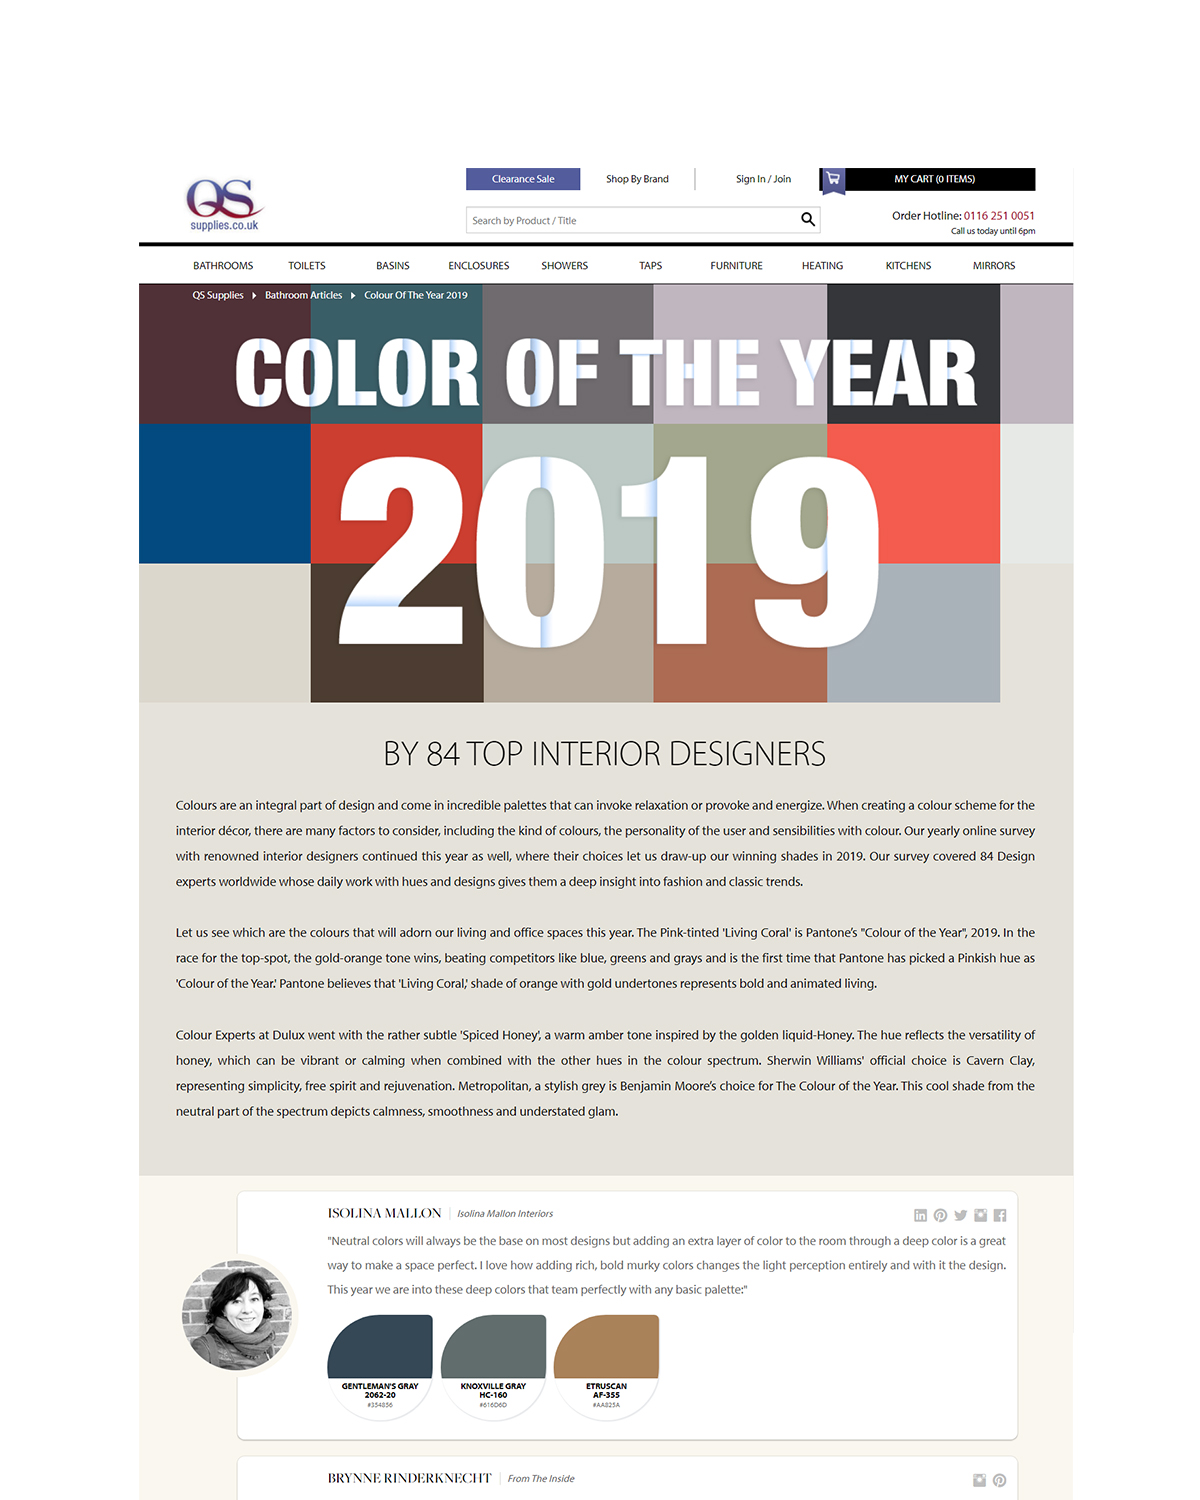 color of the year 2019   we are between the top interior designers worldwide speaking about our personal vision for the color of the year 2019.   read more.